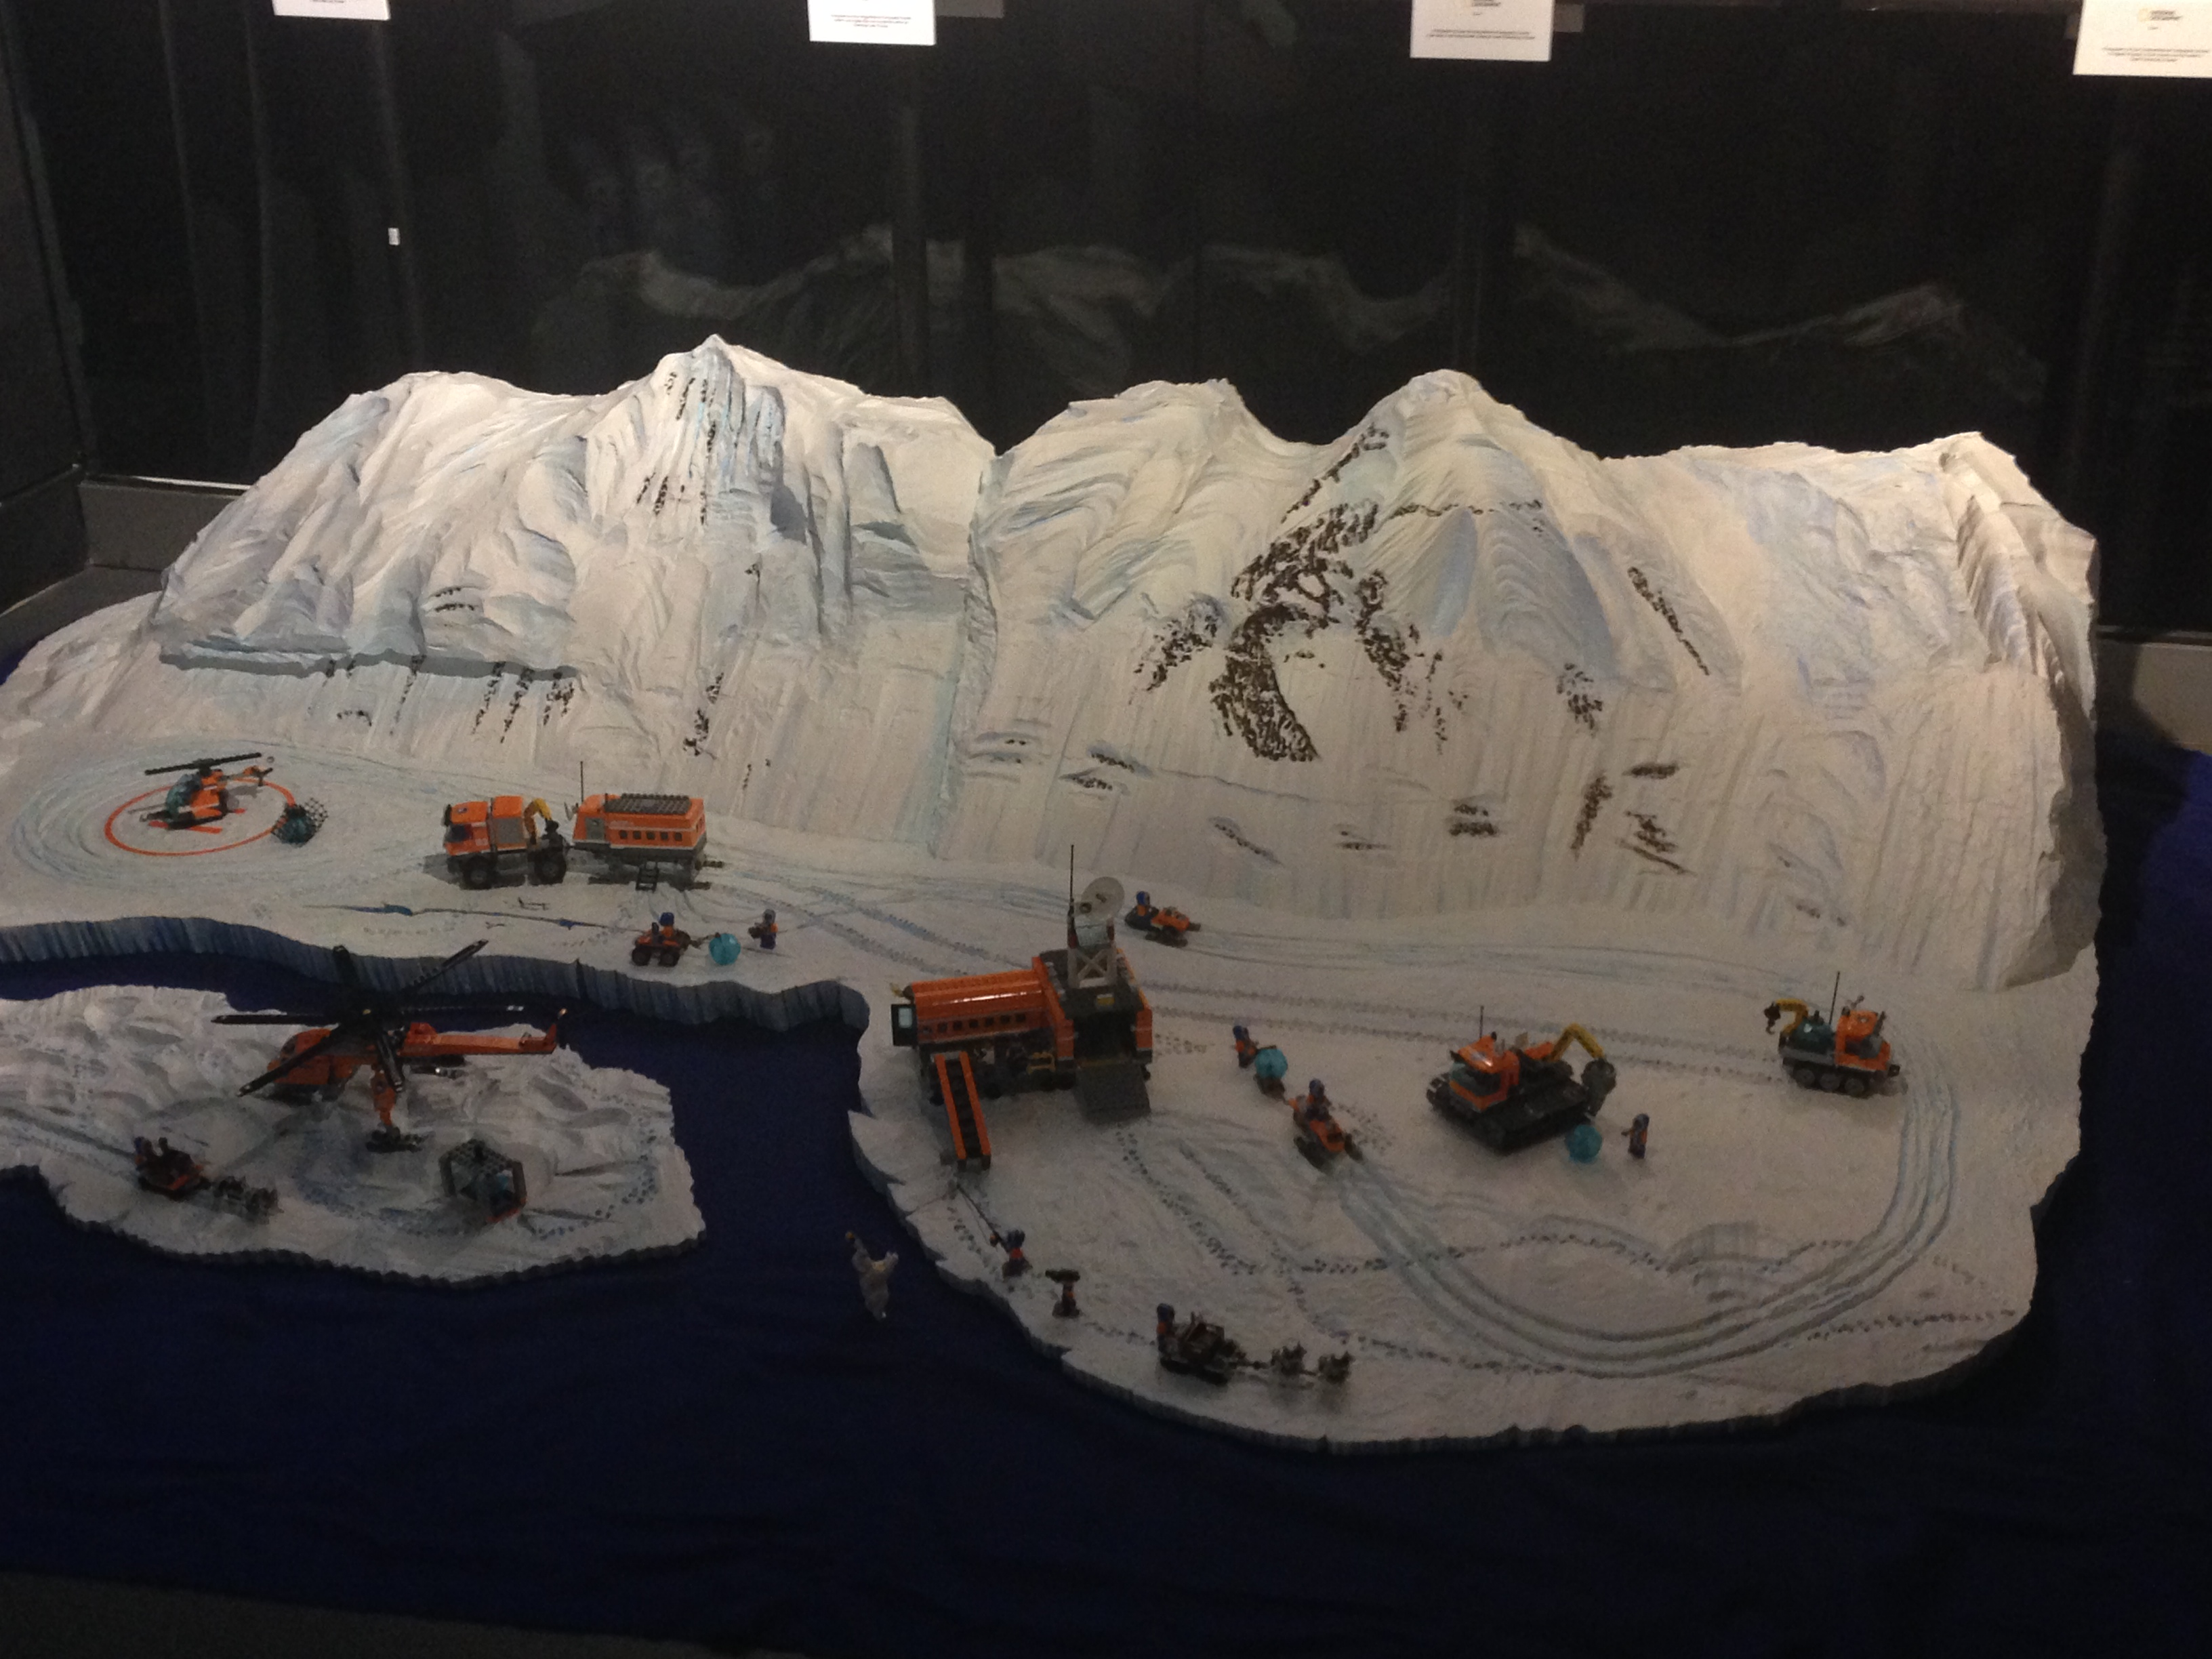 barclaycard us contact with Sophie At The Lego City Arctic Event With Adventurer Ben Saunders on C69577be 88f1 11e7 850e 2e80af156eae also Pre Owned 1894 Full Gold Sovereign Coin together with British Summer Time At Hyde Park besides Legoland Birmingham Barclaycard Arena Opening 13143496 together with Reading 2007.